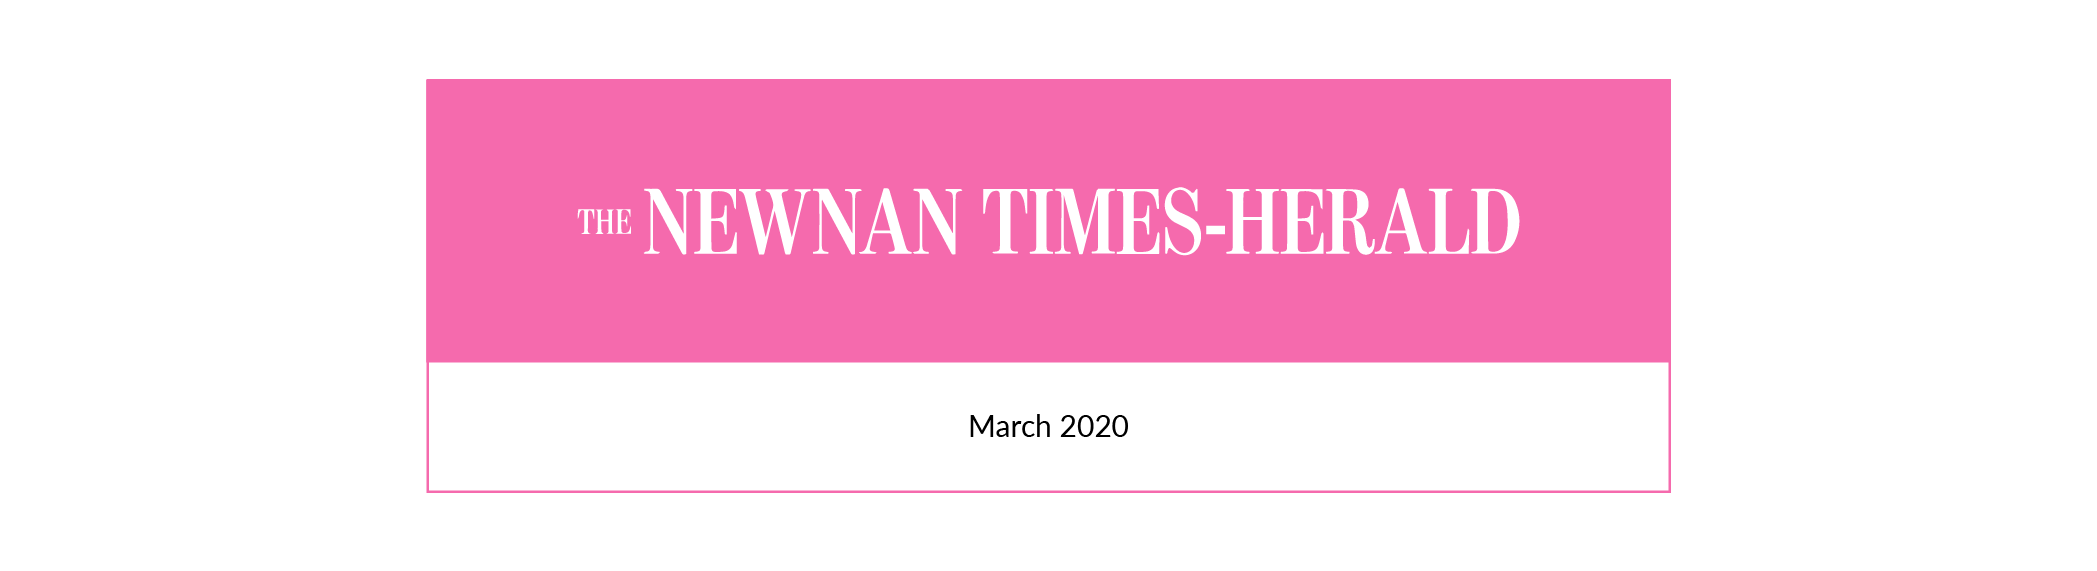 Newnan Times Herald | March 2020